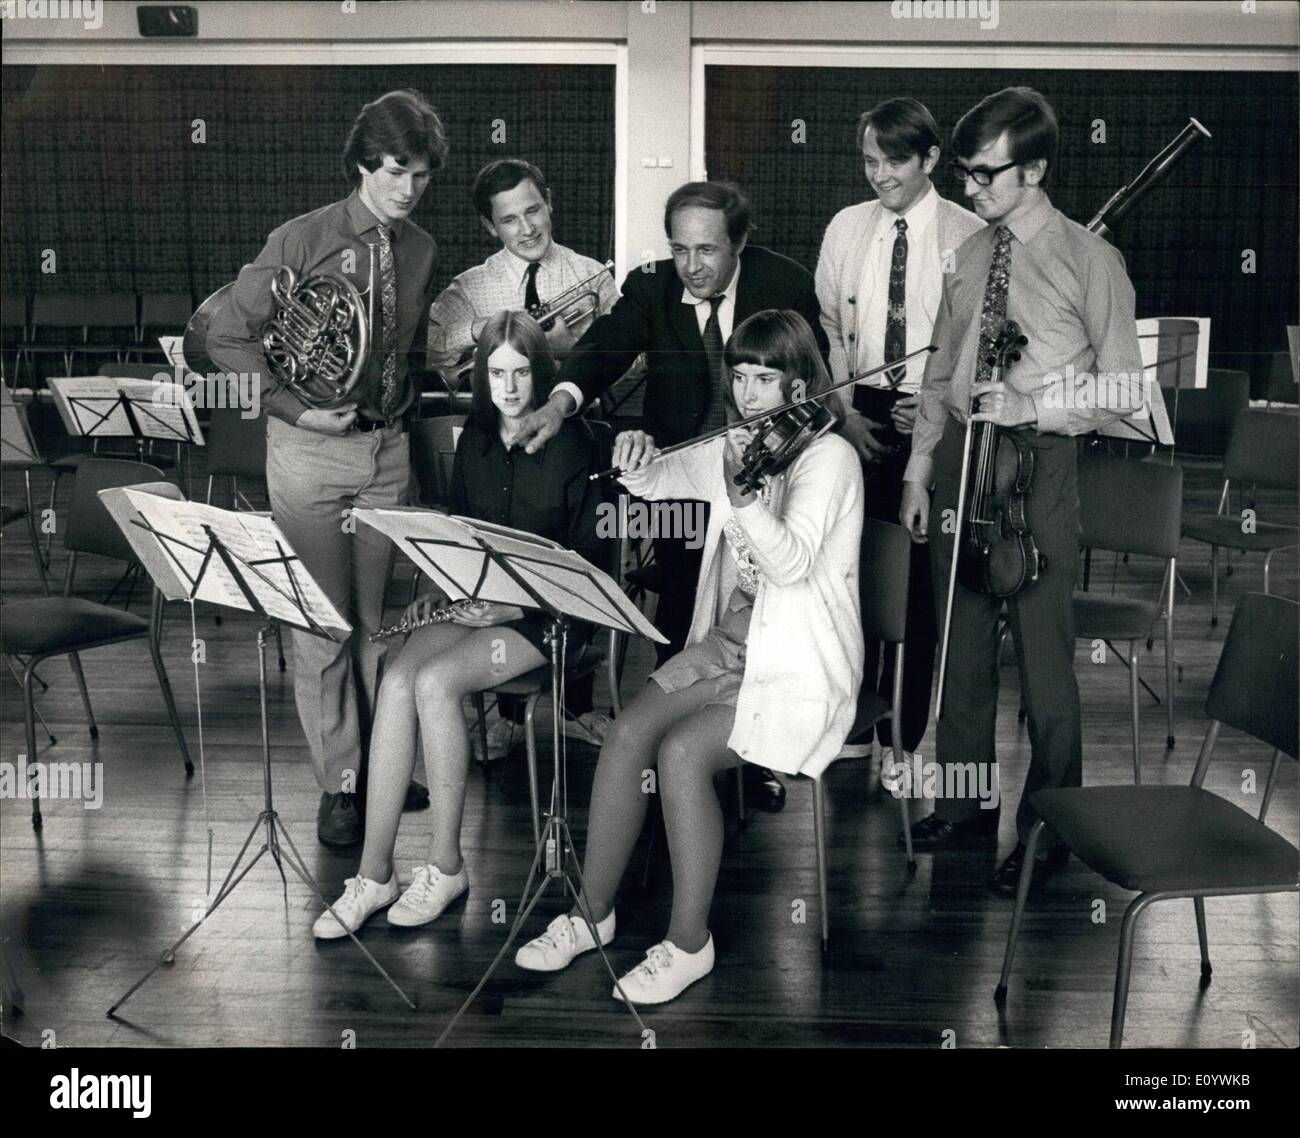 Aug. 08, 1971 - Young Musicians of the National Youth Orchestra rehearse with their French Conductor: A ten-day course of training and rehearsal in a ''borrowed'' school in Croydon, followed by concerts in the Albert Hall, London and the Usher Hall, Edinburgh, this is the programme arranged this month for the 160 young musicians of the National Youth Orchestra of Great Britian. Today they were rehearsing at the schoool the John Whitgift School, Addiscombe Road, Croydon, under their French conductor Pierre Boulez - Stock Image